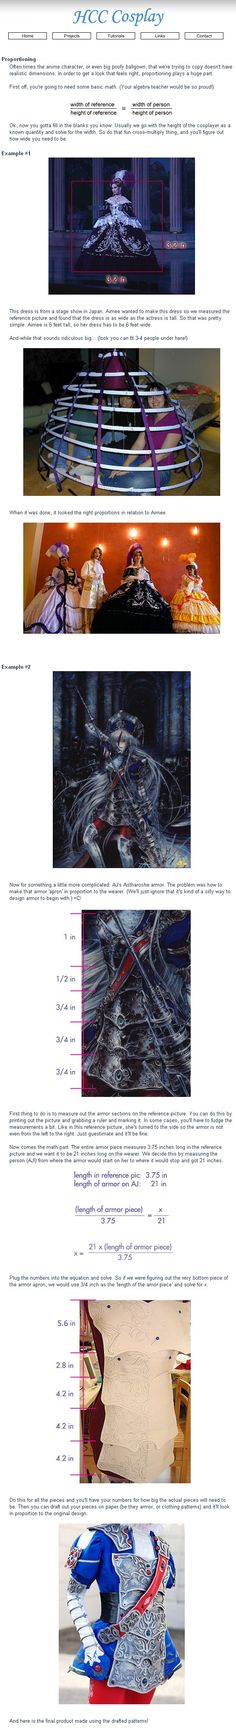 Cosplay Math: Determining proportions from a drawing or picture.